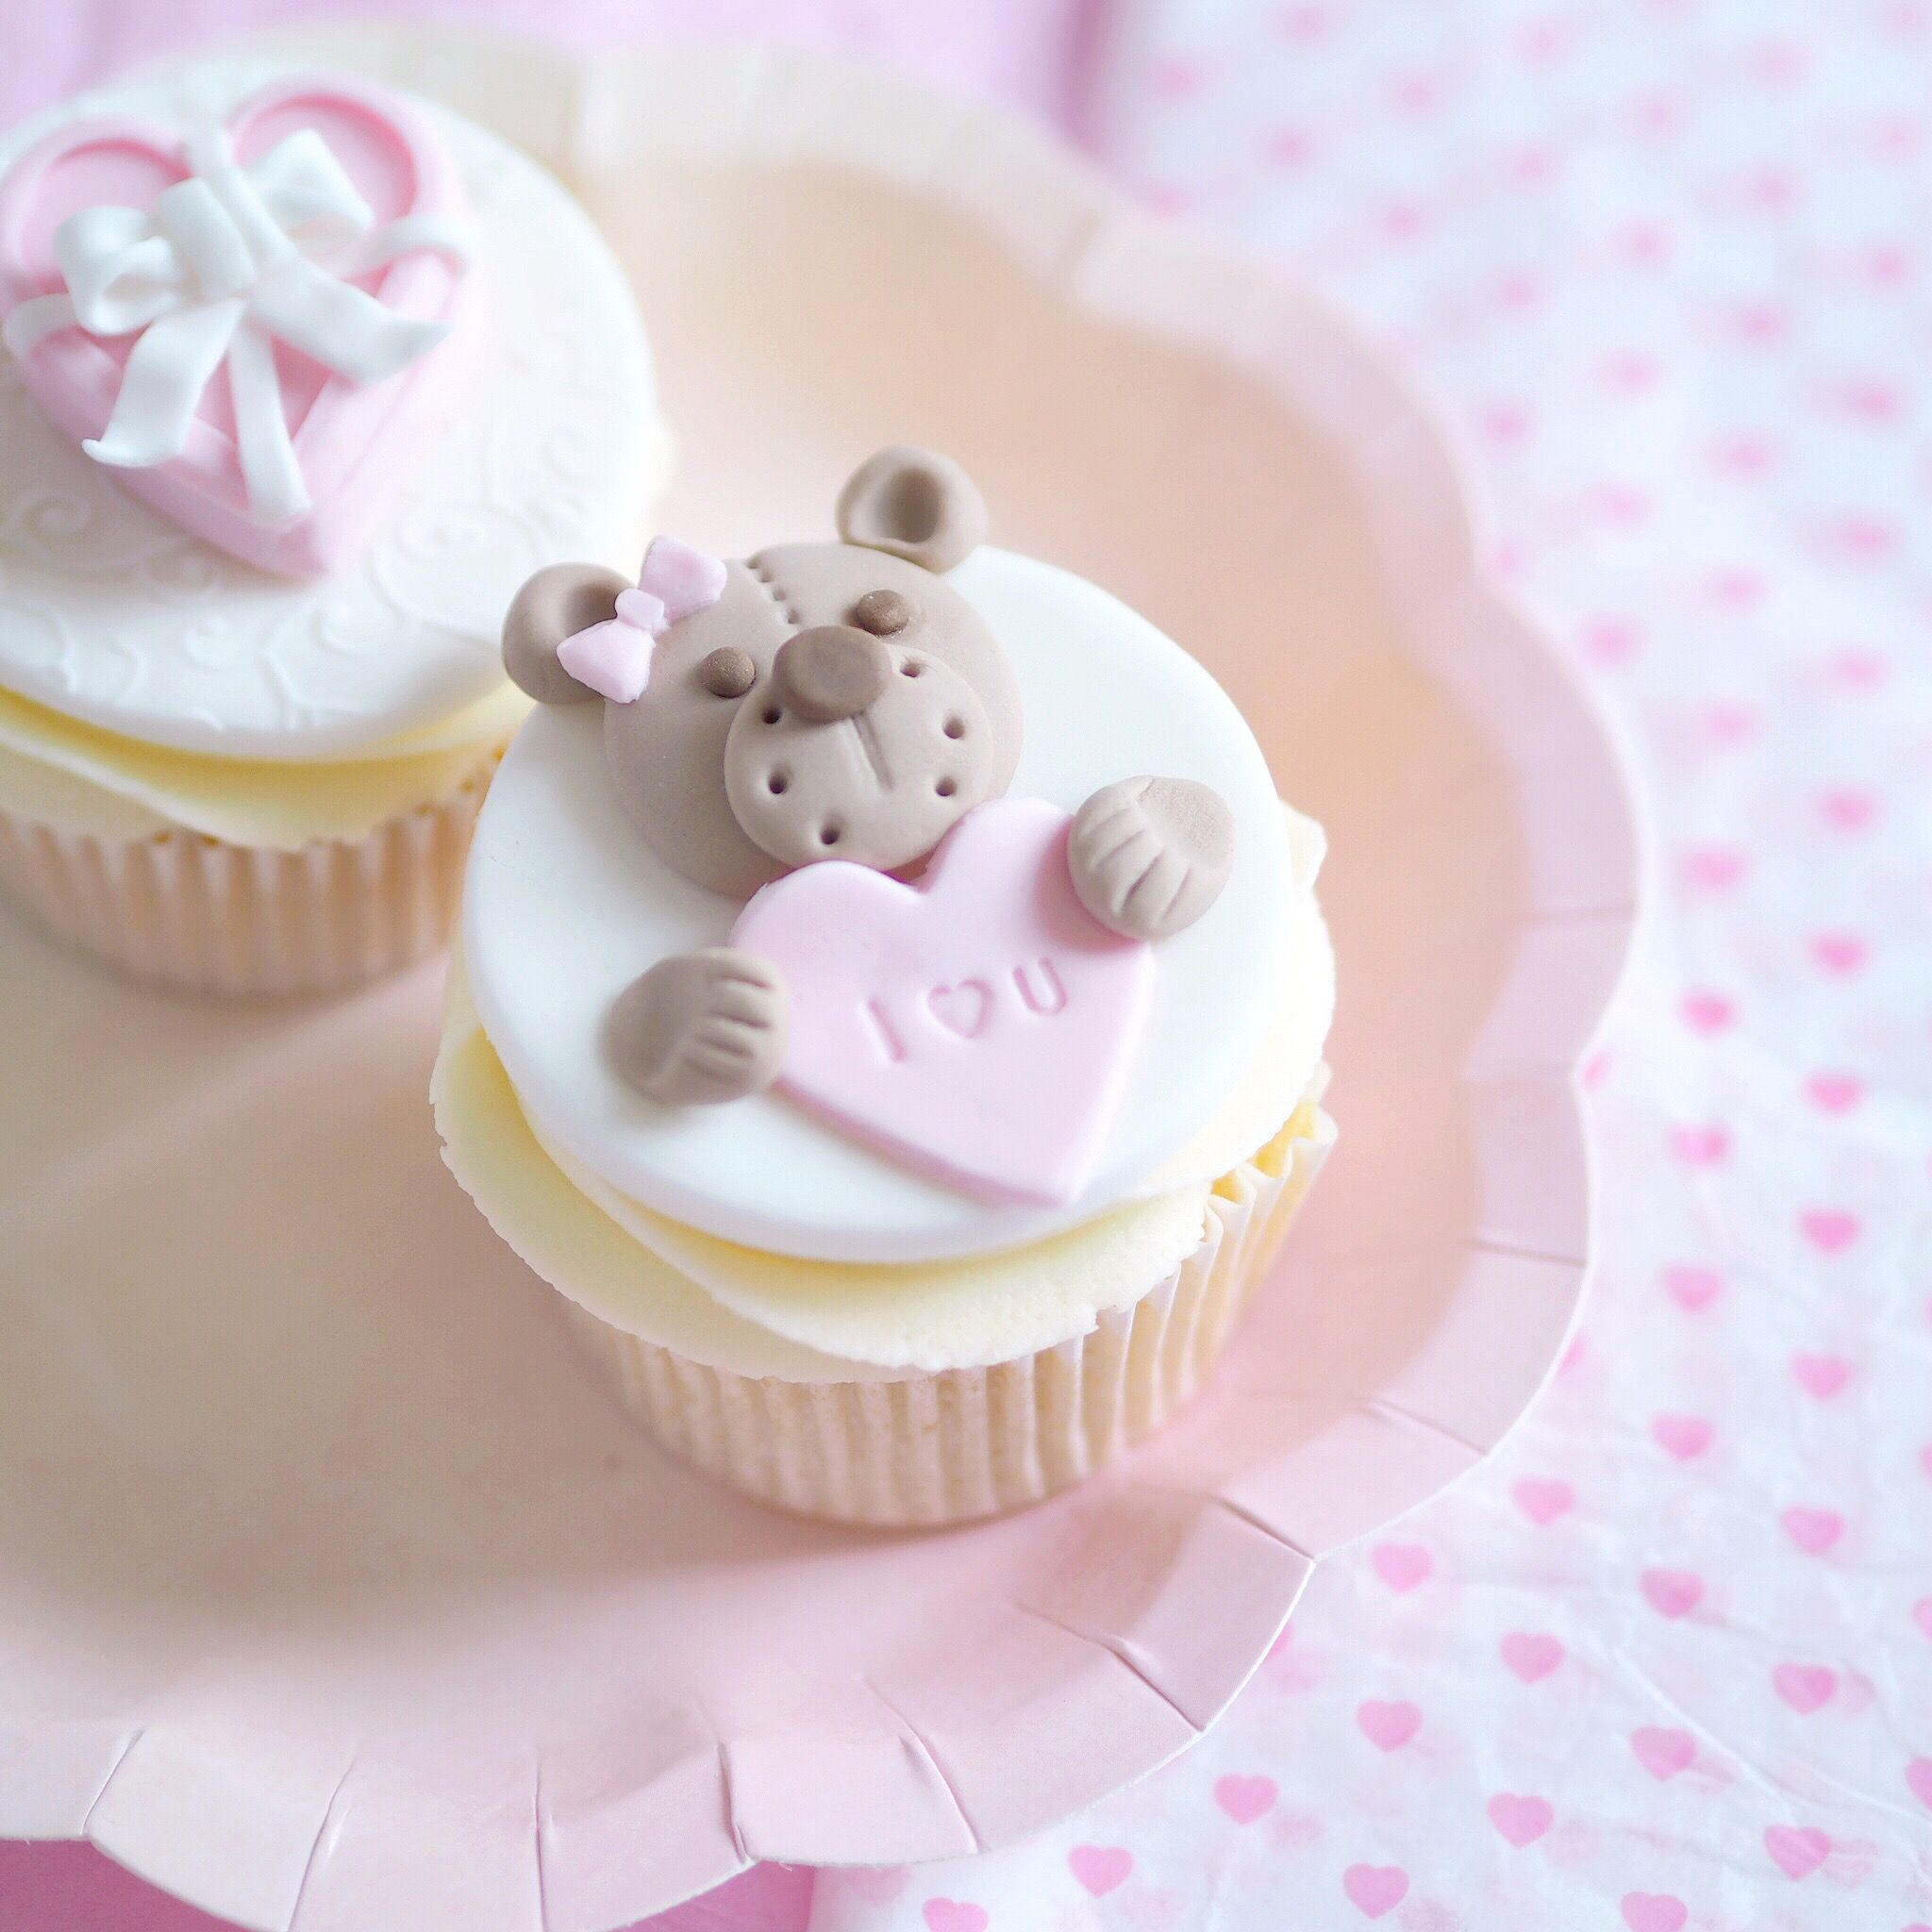 Valentine's Cupcakes Tutorial | Teddy Bears & Mini Chocolate Boxes